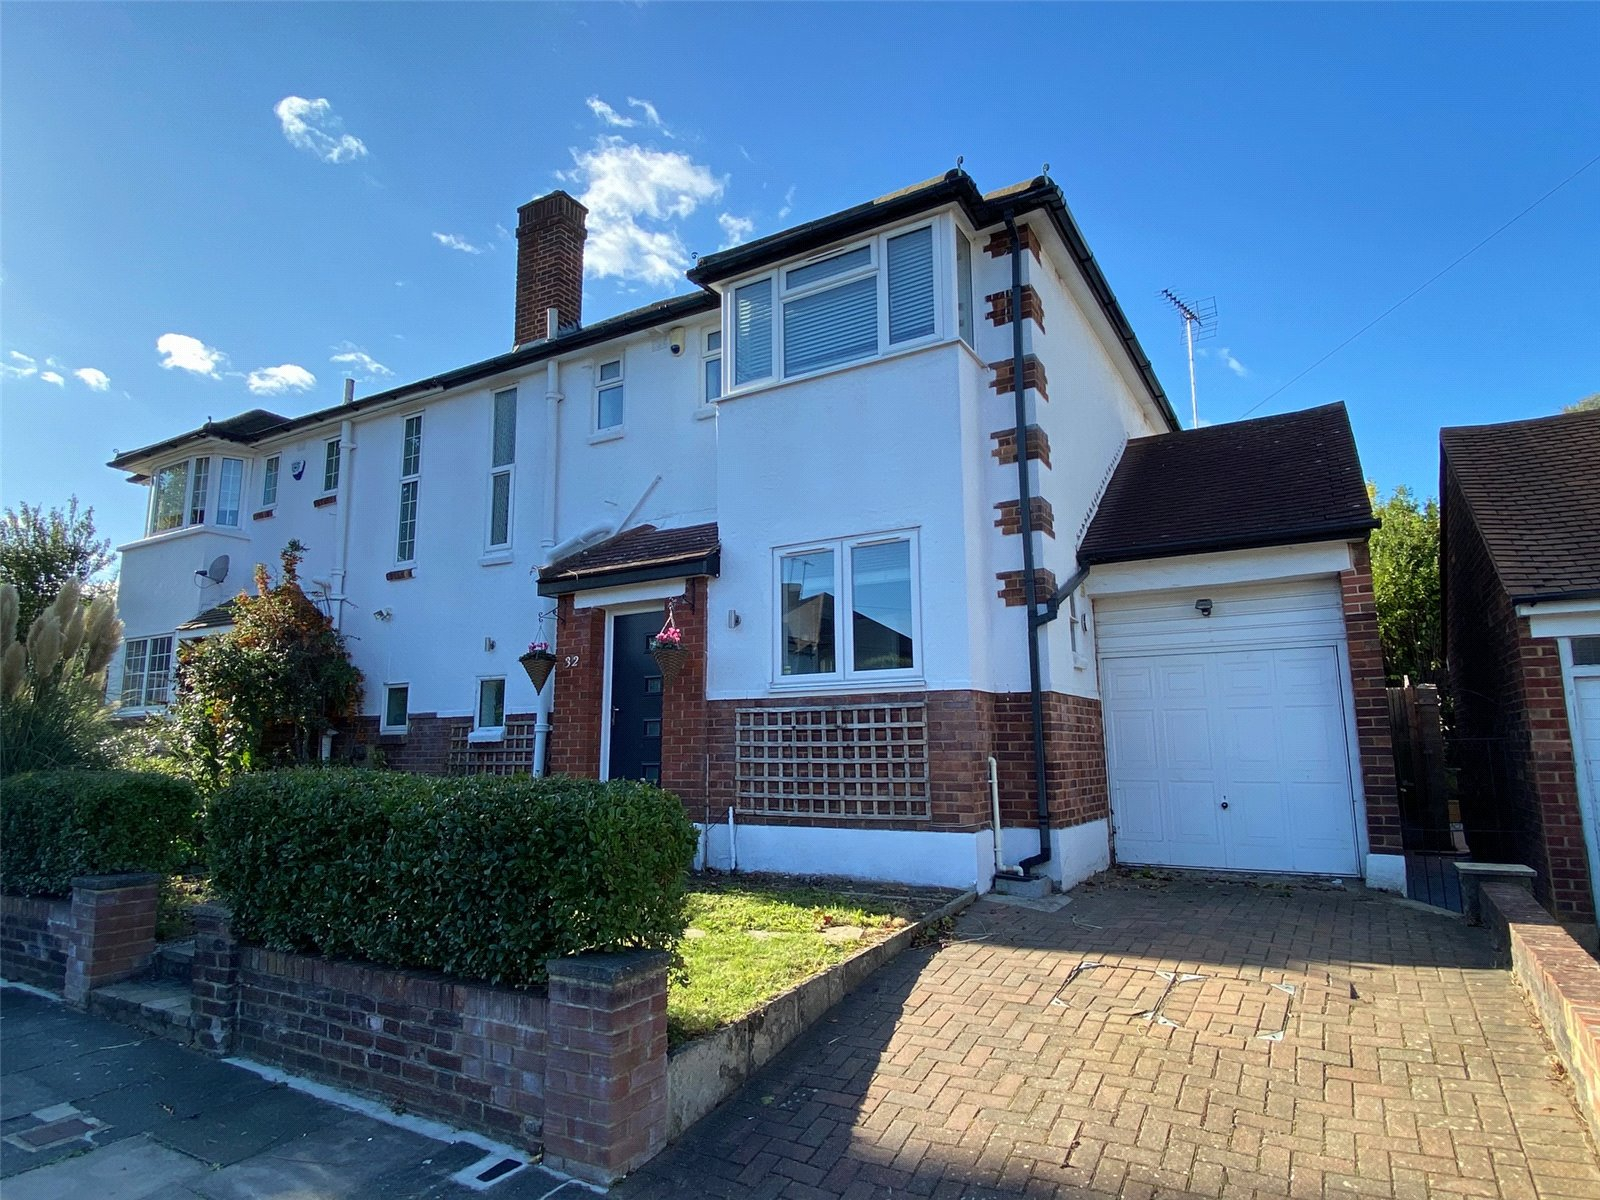 3 bed house for sale in High Barnet, EN5 1AL - Property Image 1